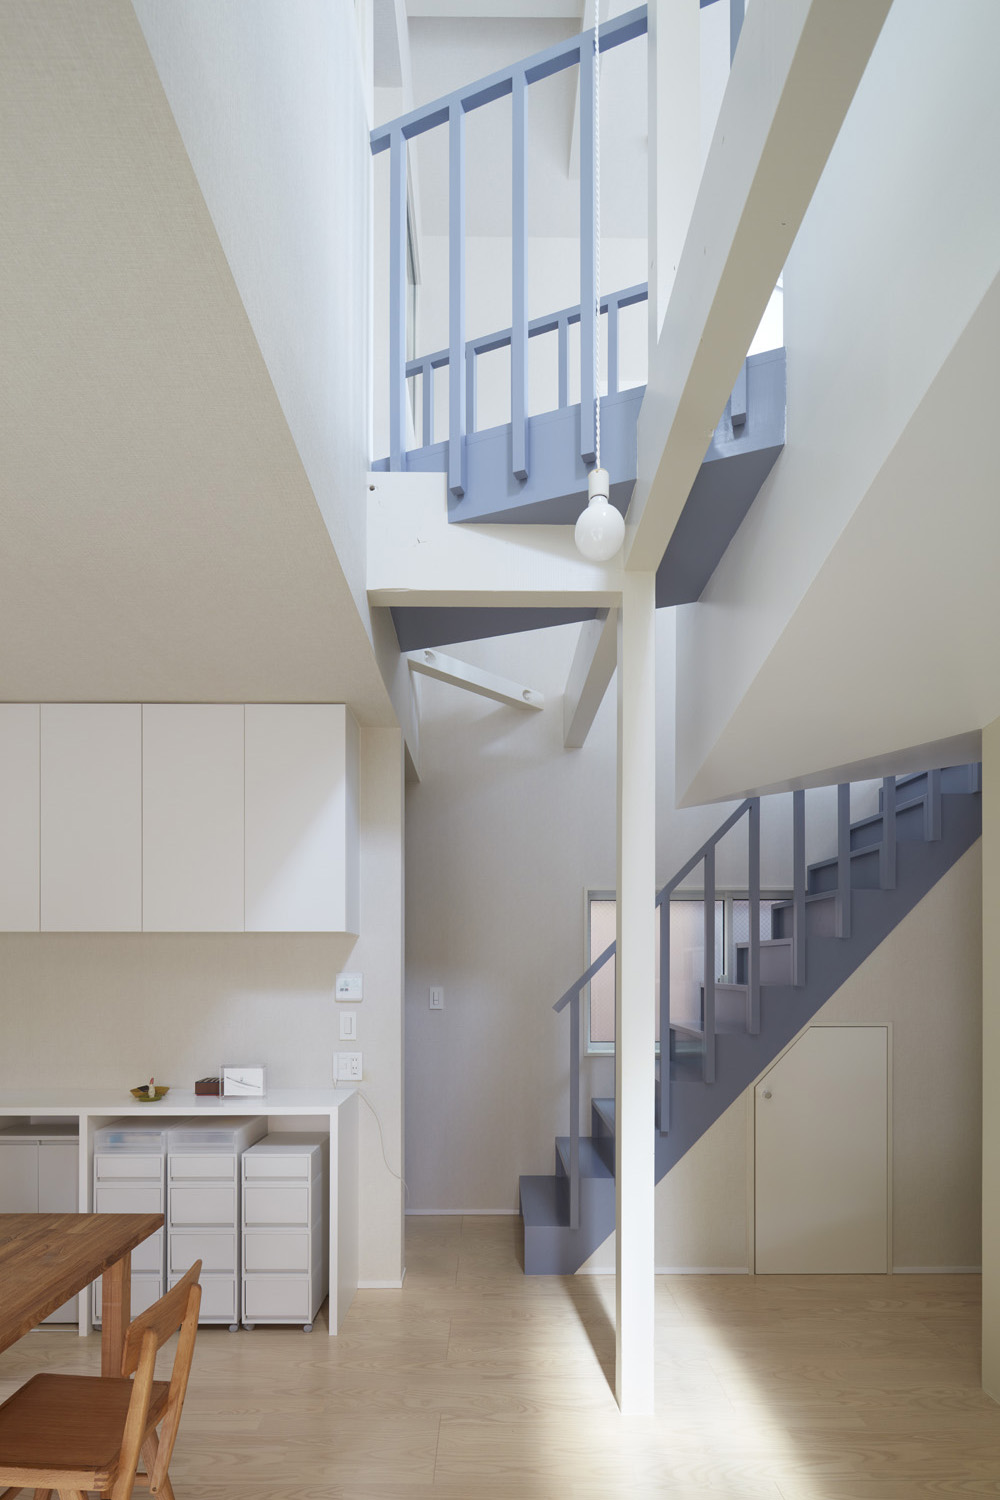 house with a nested room naf architect design inc 広島 東京を